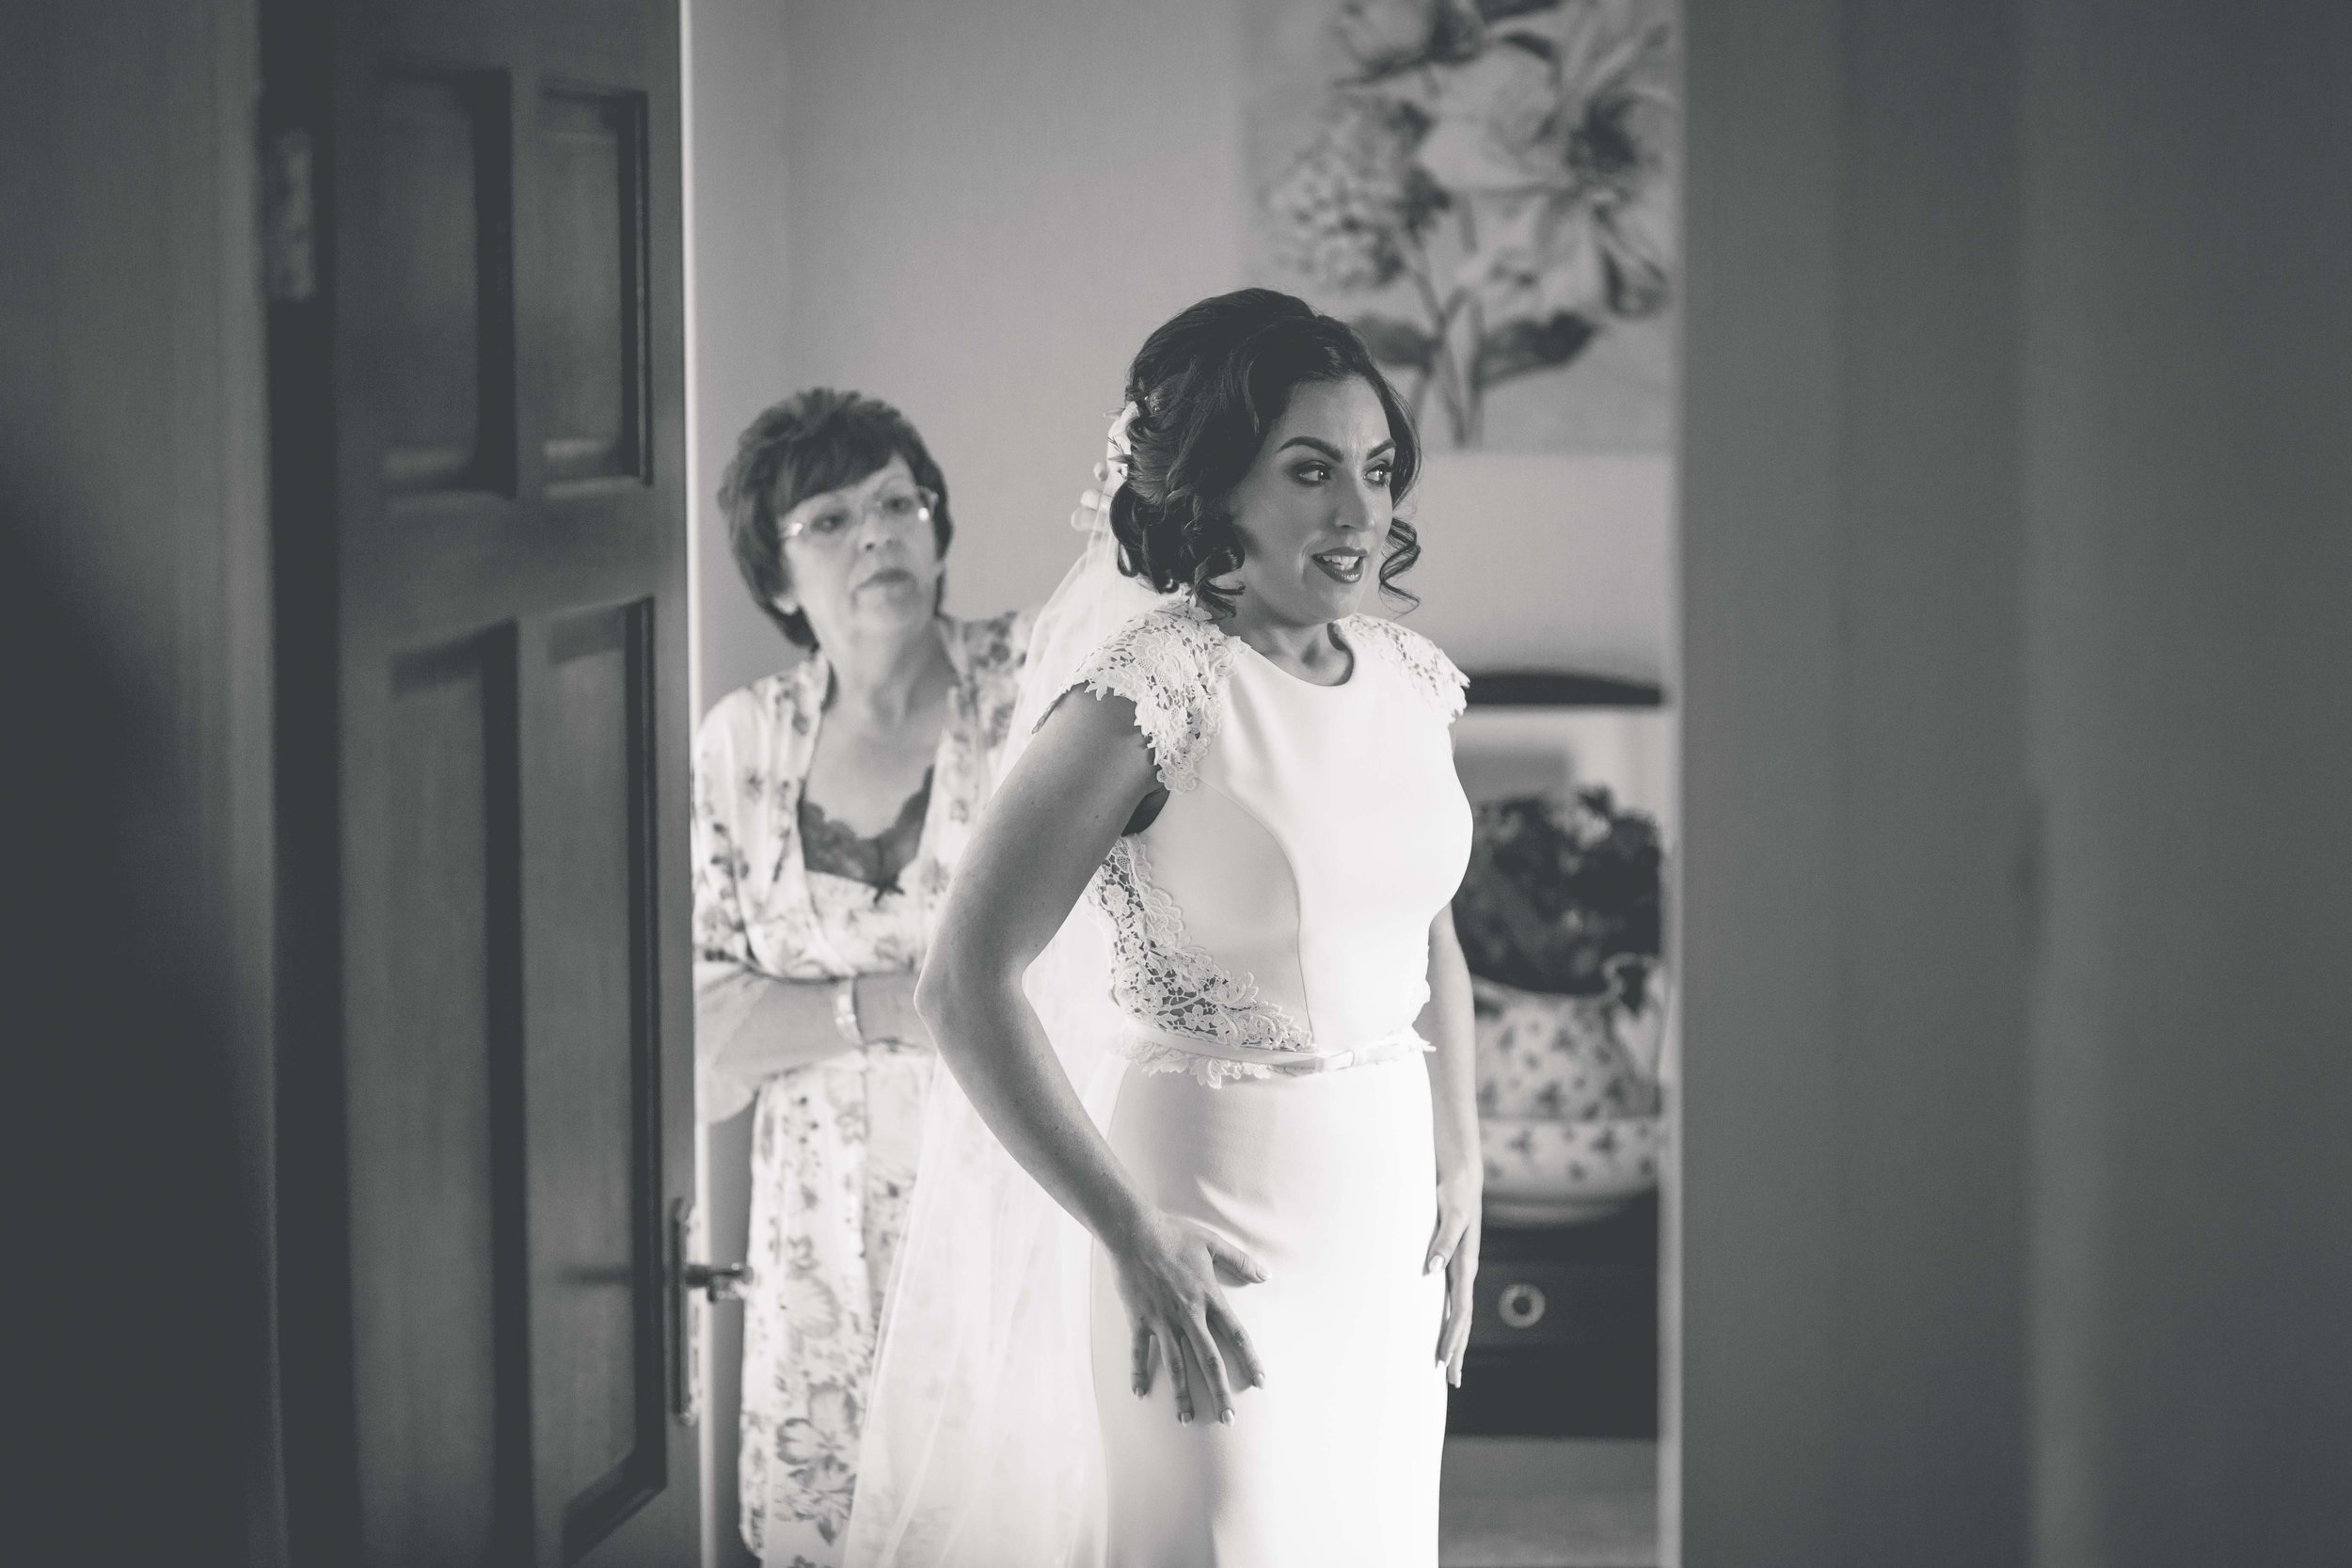 Northern Ireland Wedding Photographer | Brian McEwan Photography | Affordable Wedding Photography Throughout Antrim Down Armagh Tyrone Londonderry Derry Down Fermanagh -11.jpg